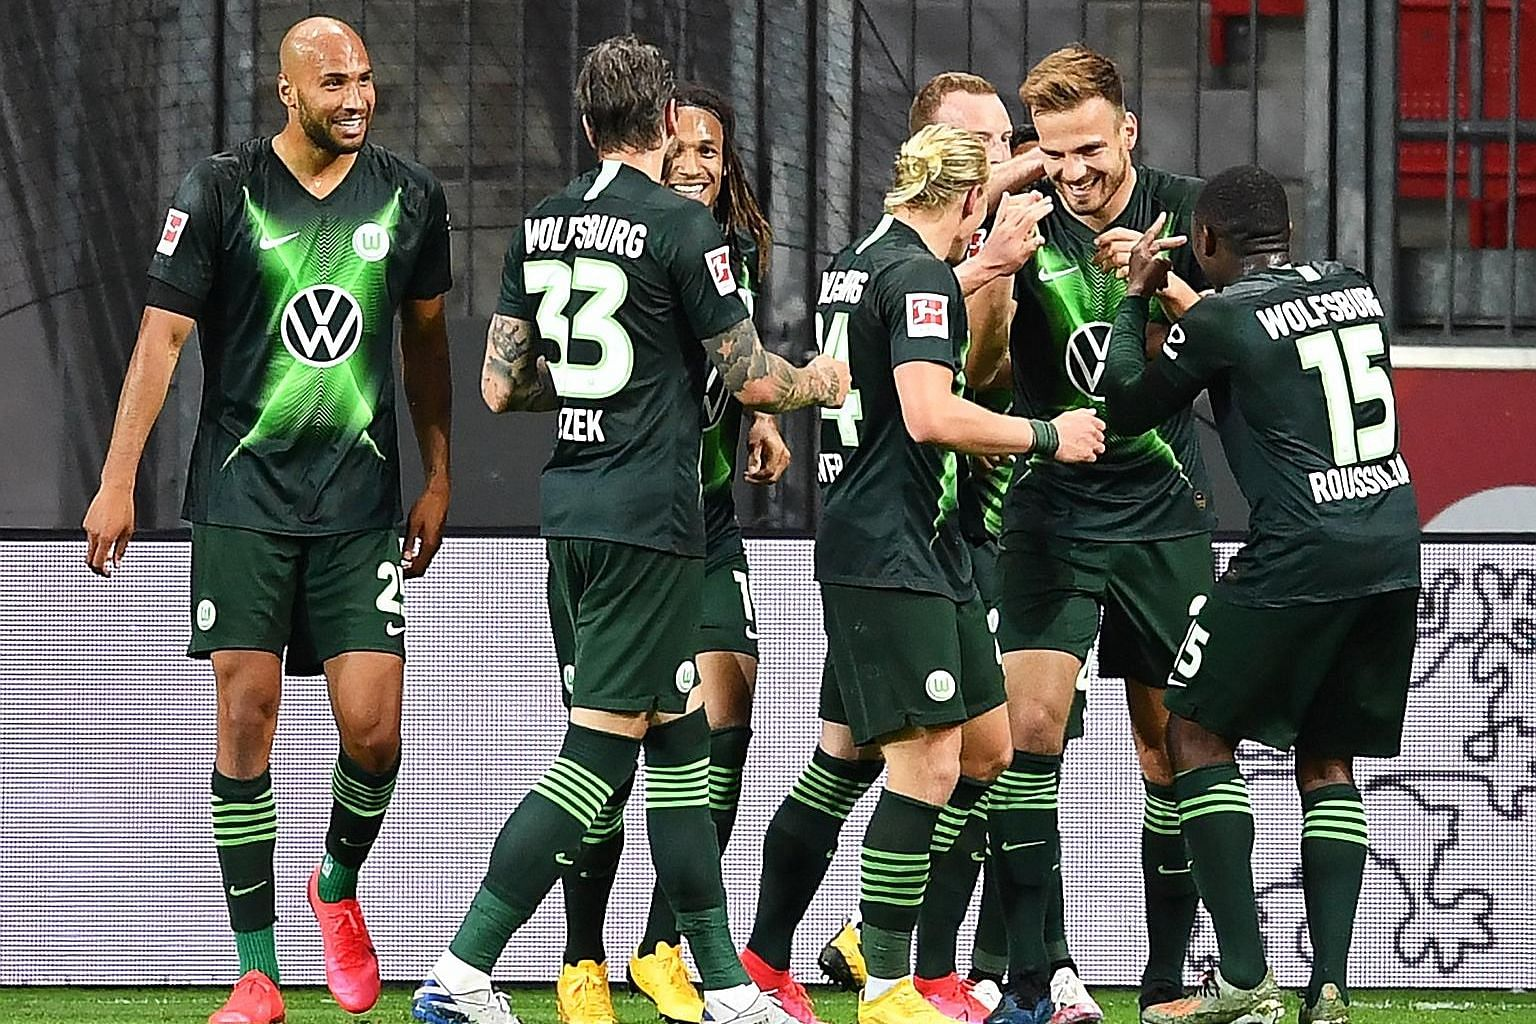 Marin Pongracic (second from right) is surrounded by teammates after putting Wolfsburg 4-0 up with his second goal against Leverkusen.